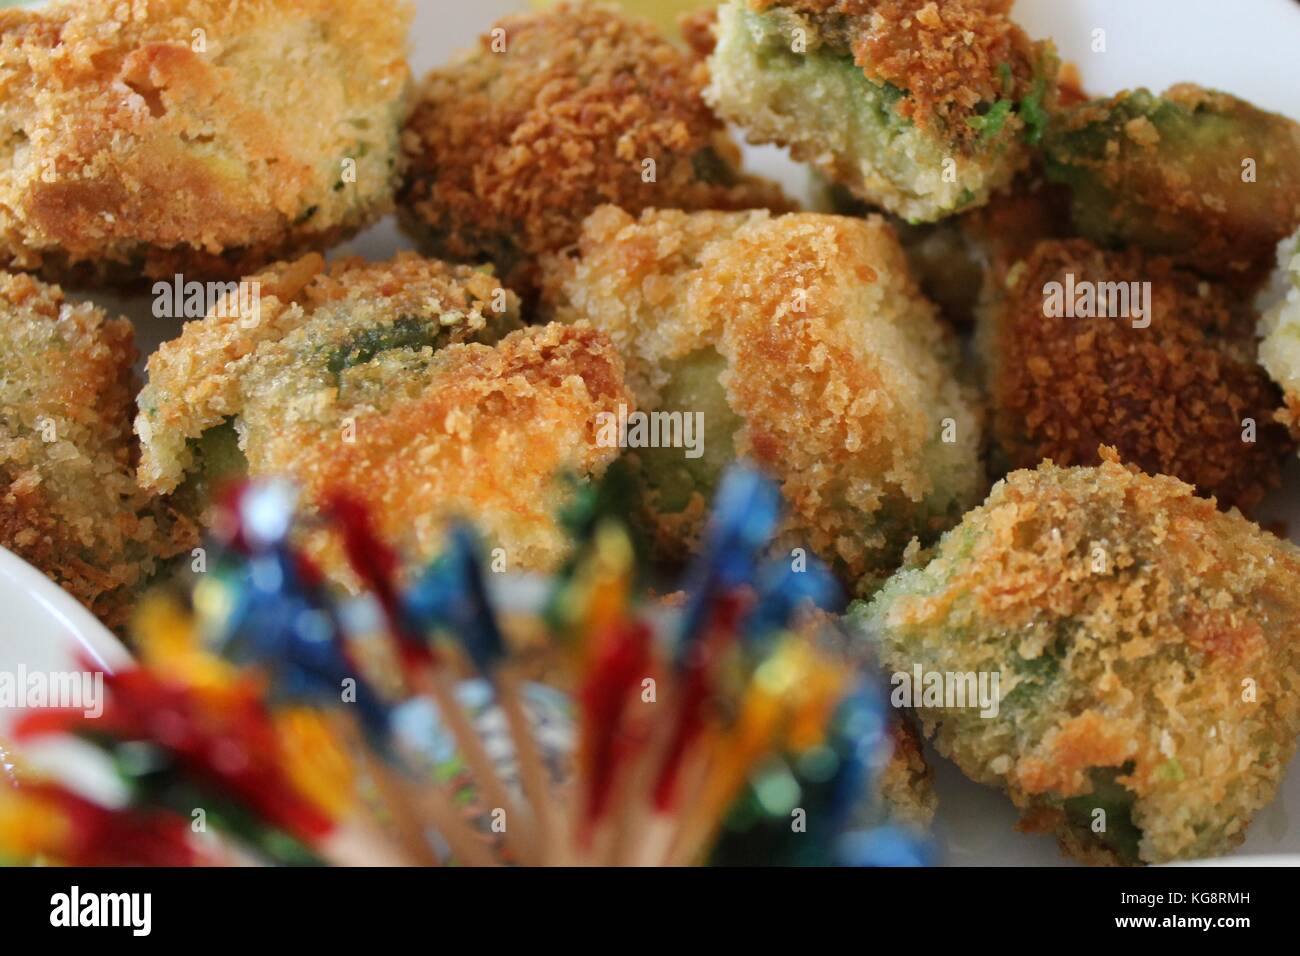 Breaded deep fried dill pickles on a white serving dish, with decorative, colorful toothpicks. - Stock Image